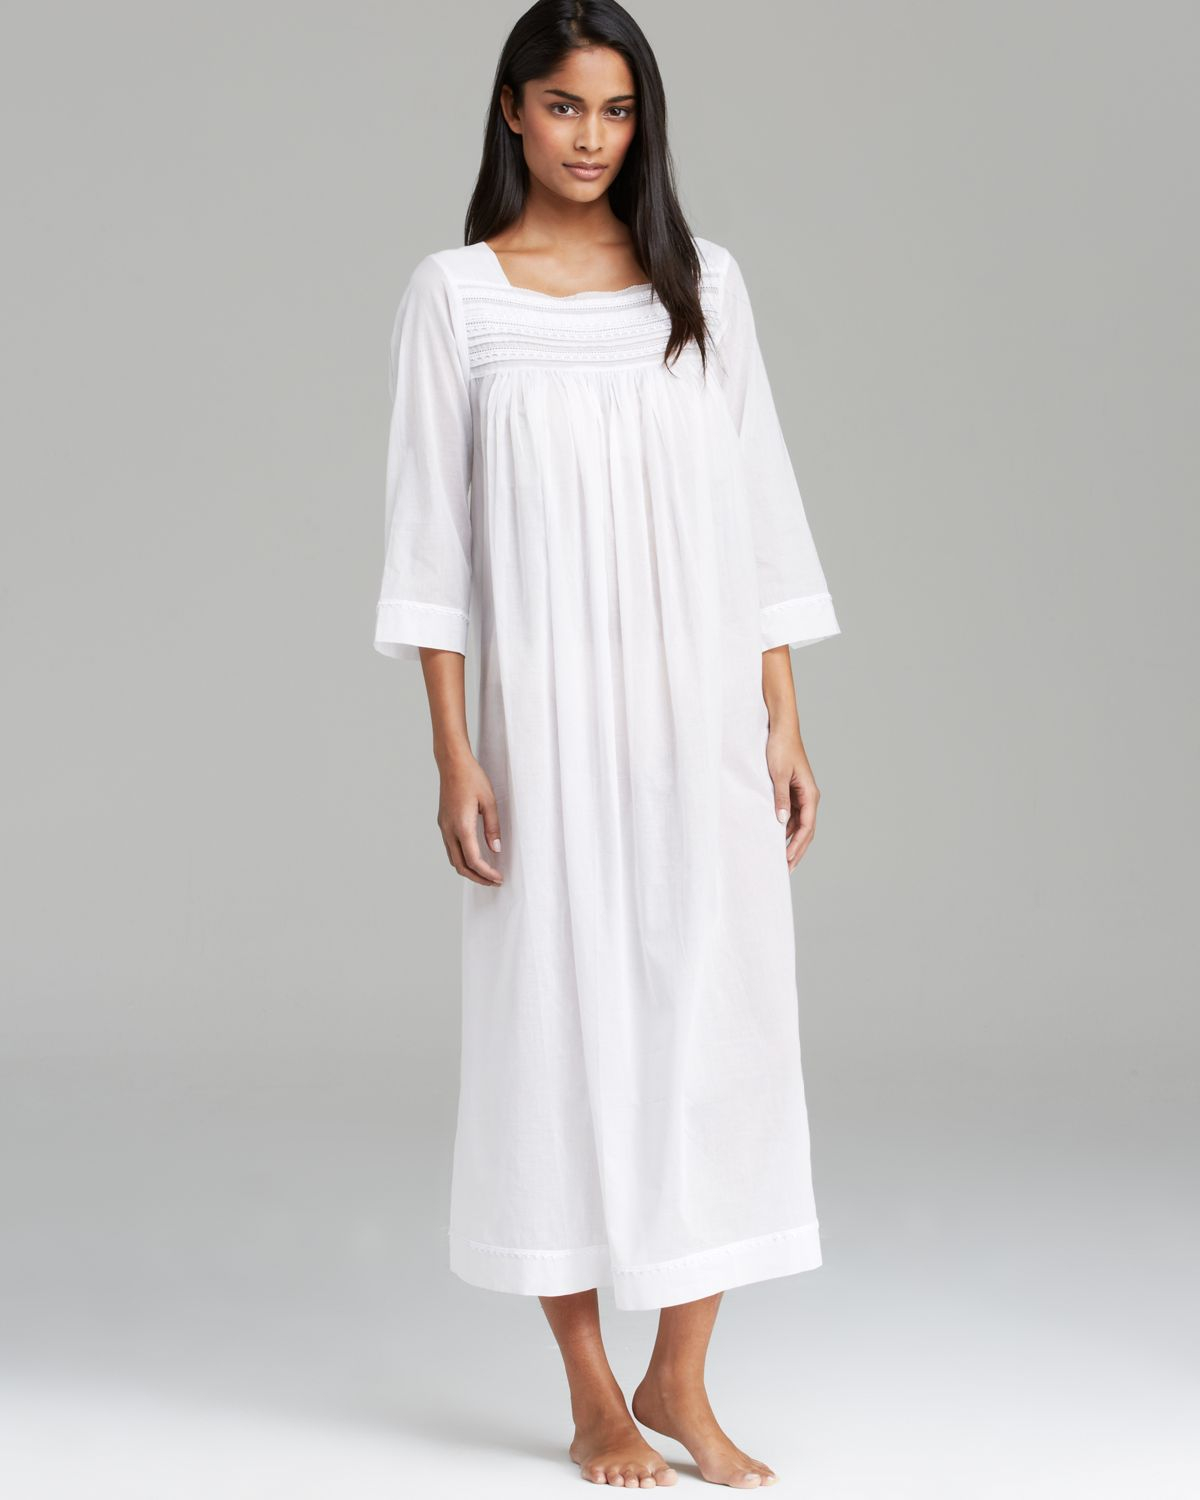 Lyst - Oscar De La Renta Sheer Serenity Cotton Long Nightgown in White